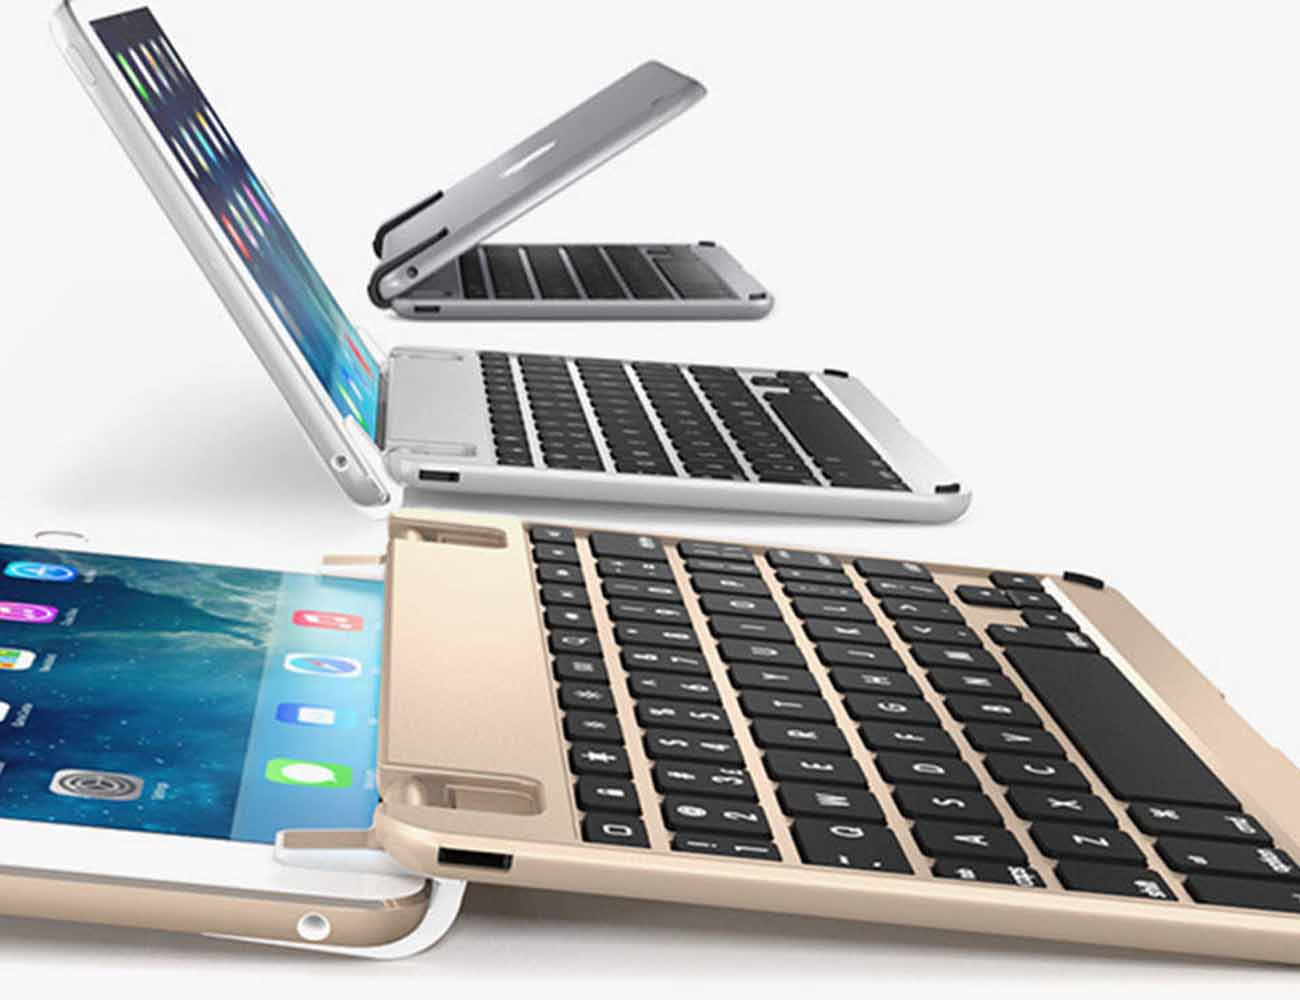 BrydgeMini – Precisely Engineered Keyboards for Your iPad Mini